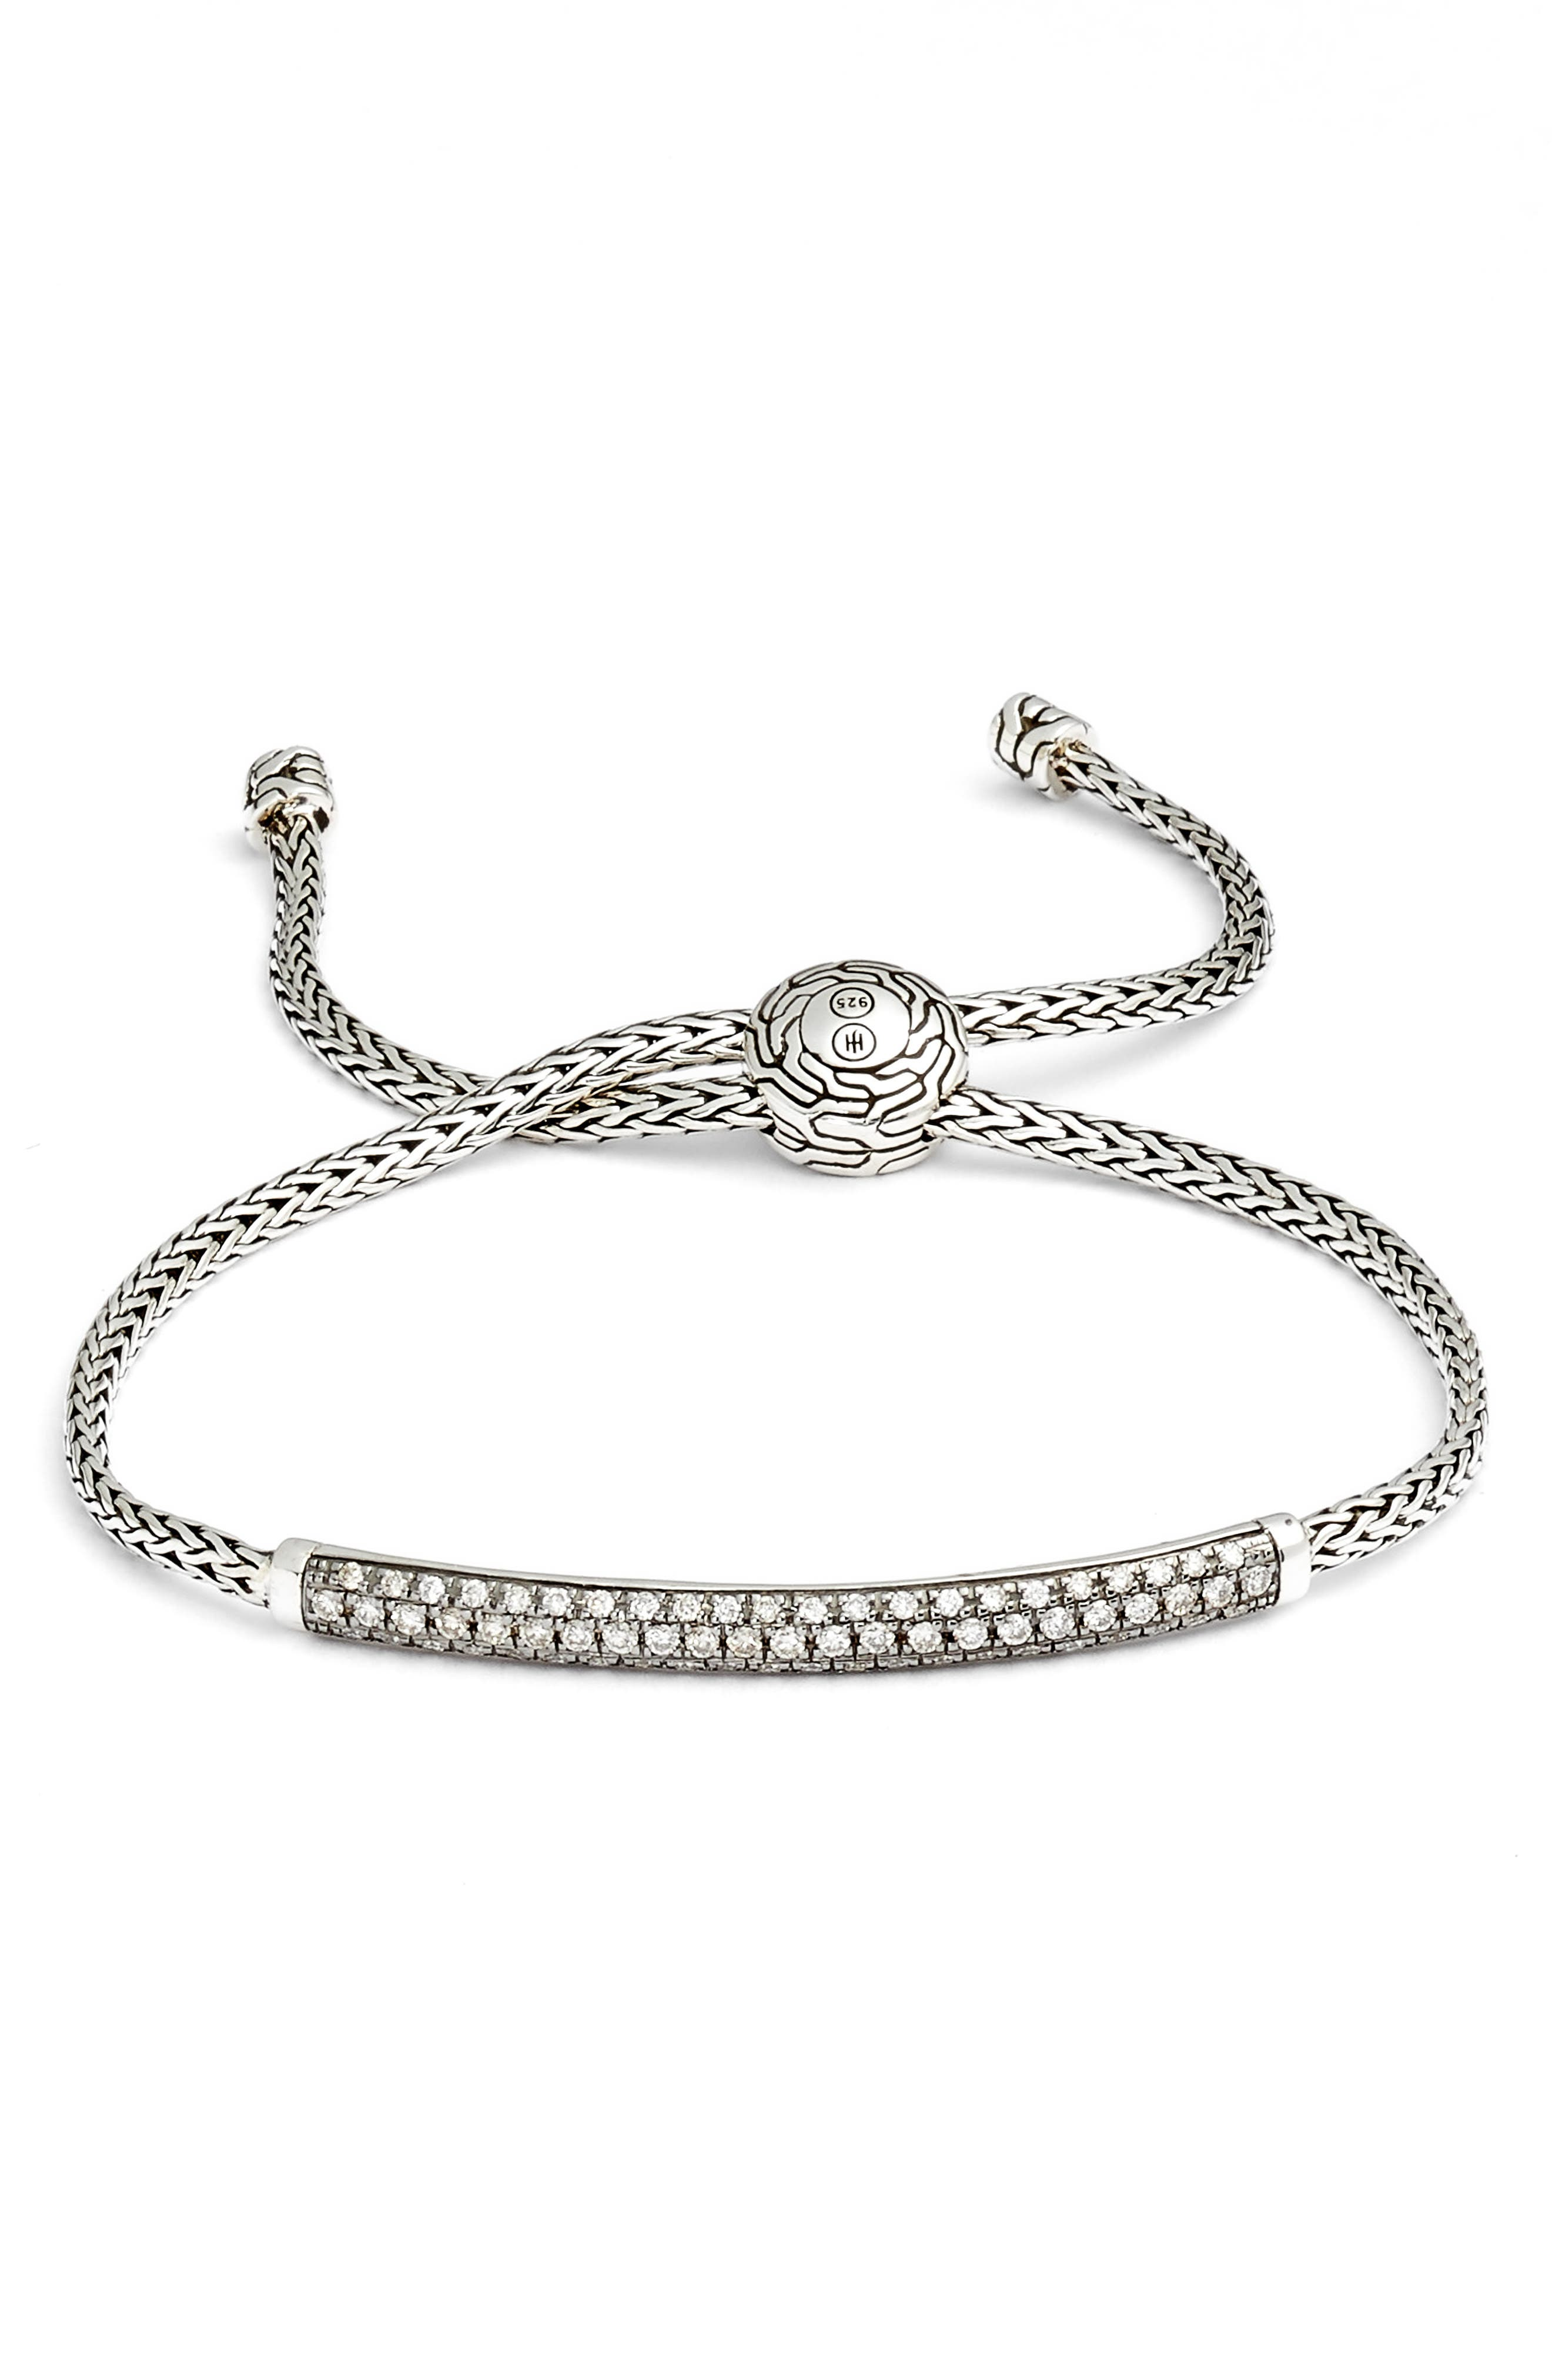 Classic Chain Pull Through Bracelet,                             Main thumbnail 1, color,                             SILVER/ GRAY DIAMOND